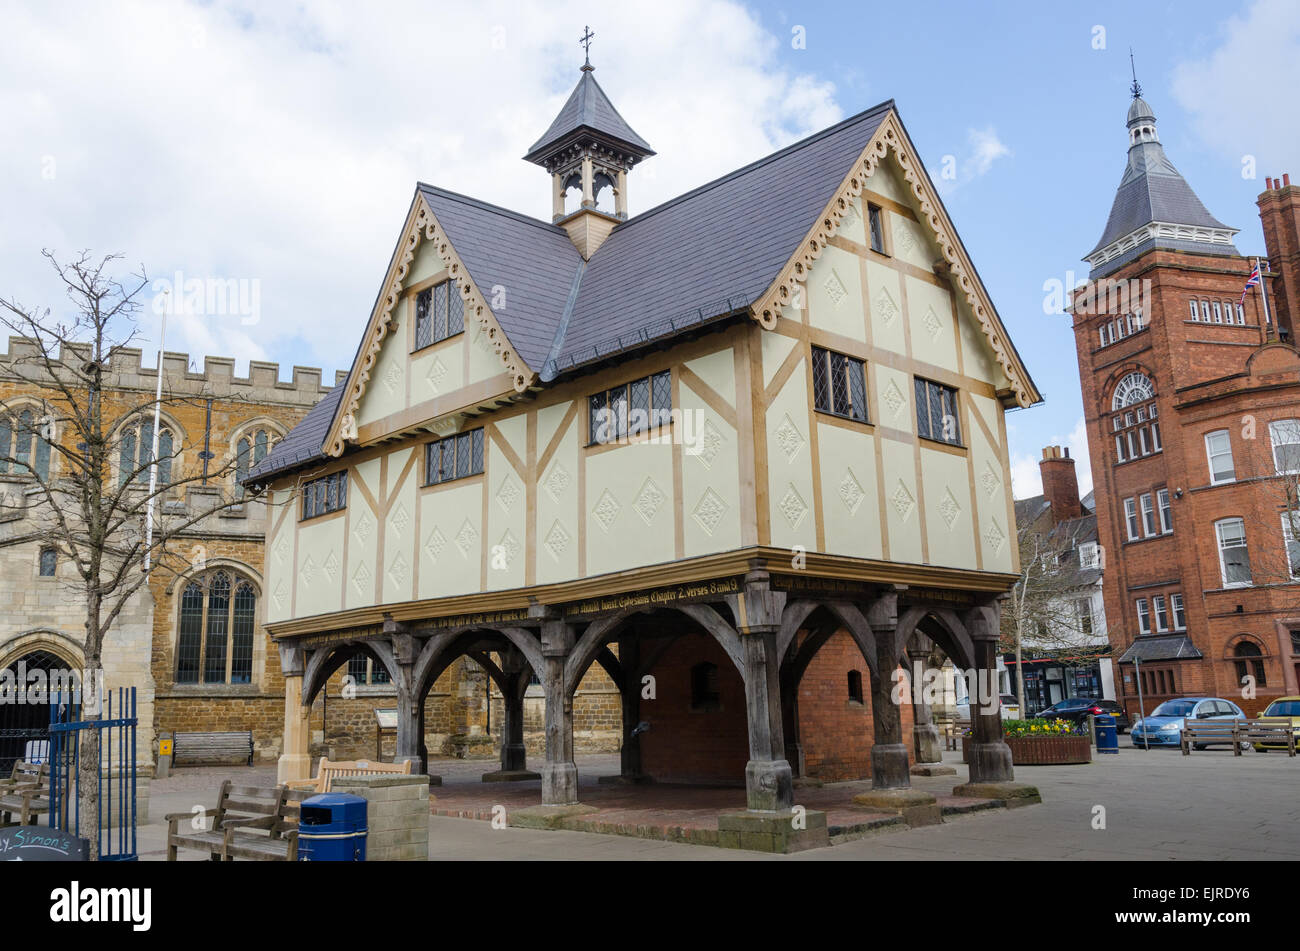 The timber-framed Old Grammar School building in the Leicestershire town of Market Harborough - Stock Image